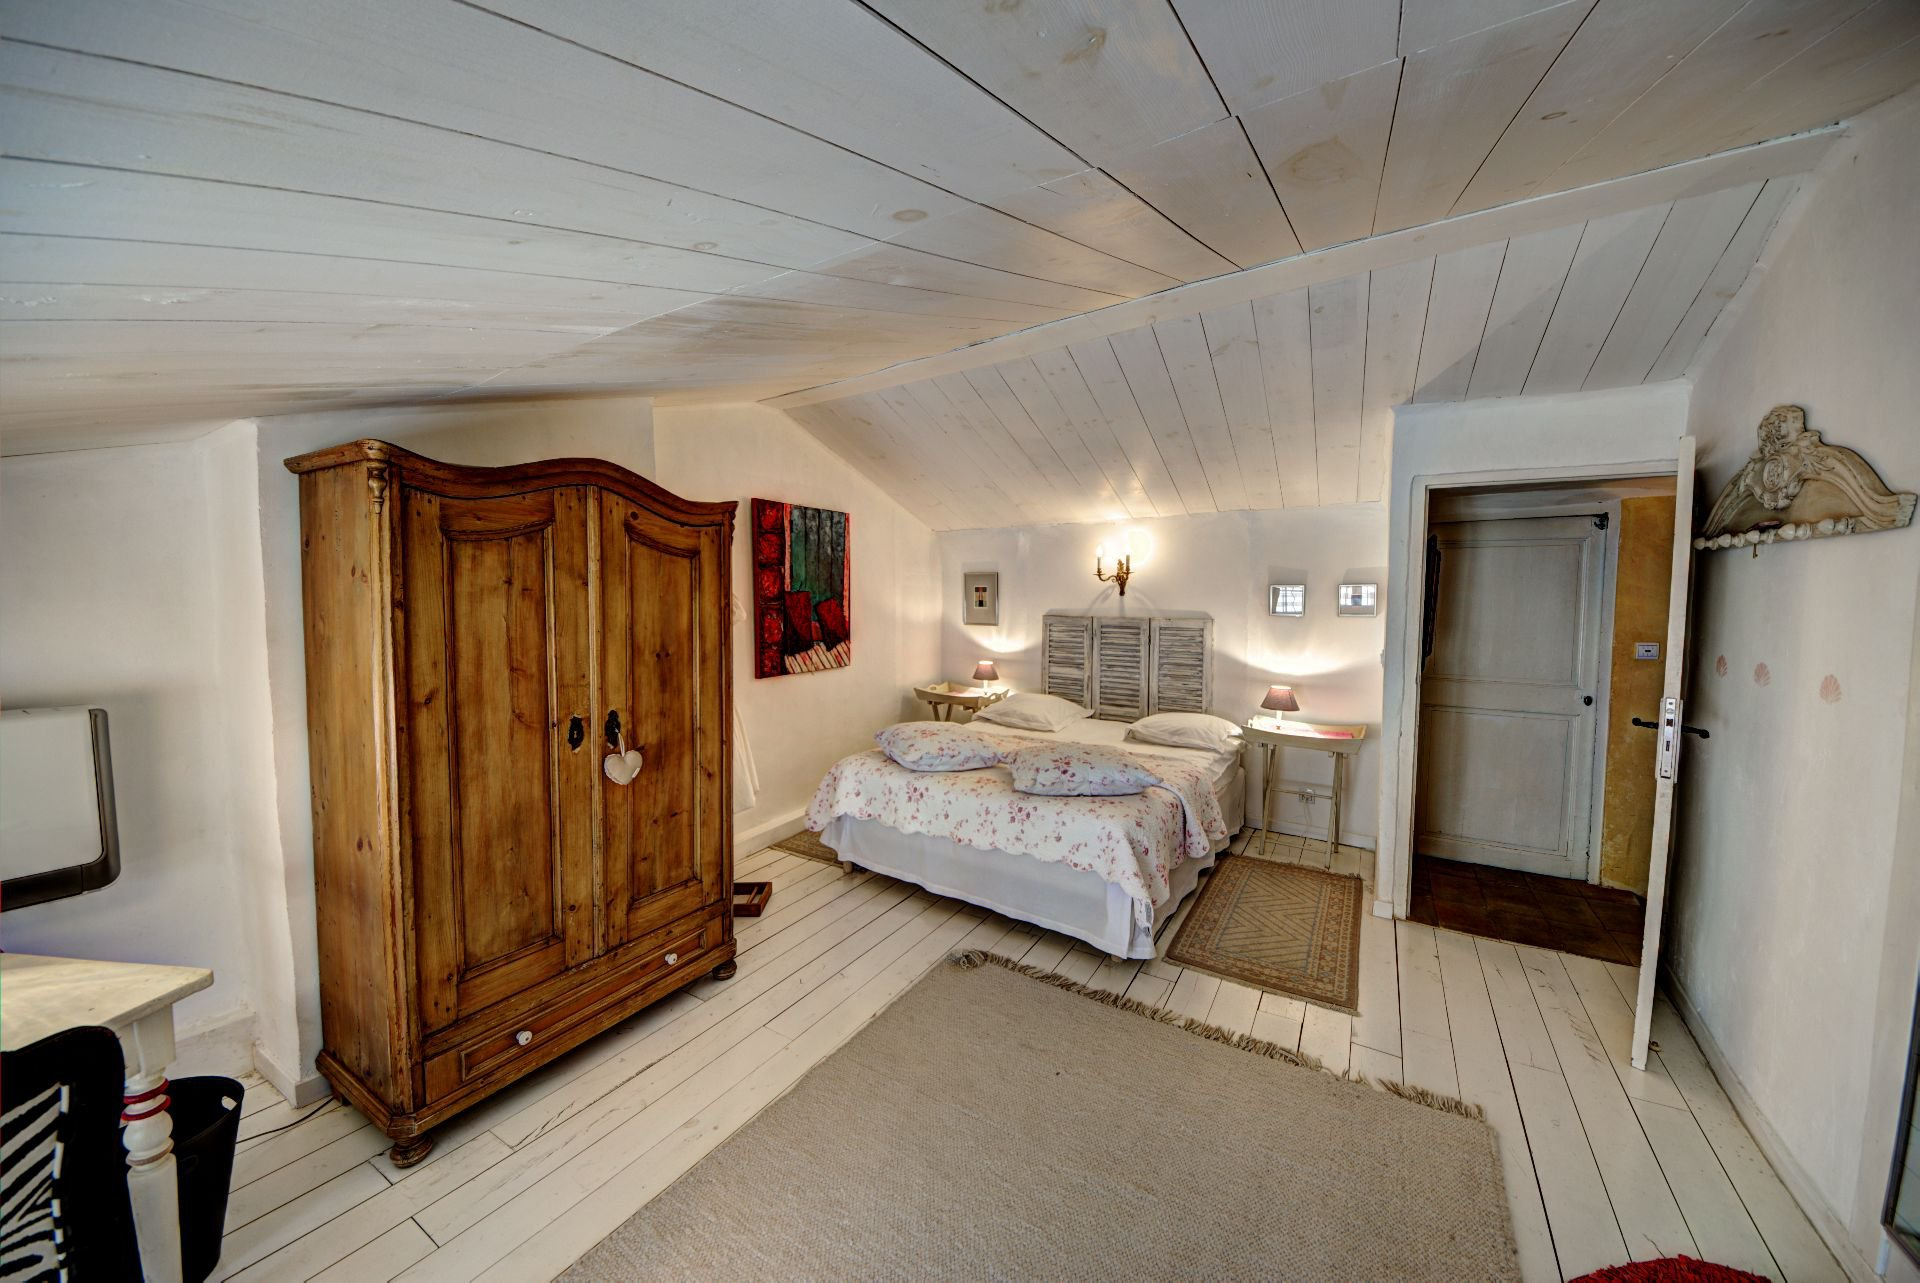 Suite 2 of the guest house with garden and pool Rocbaron, Var, Provence